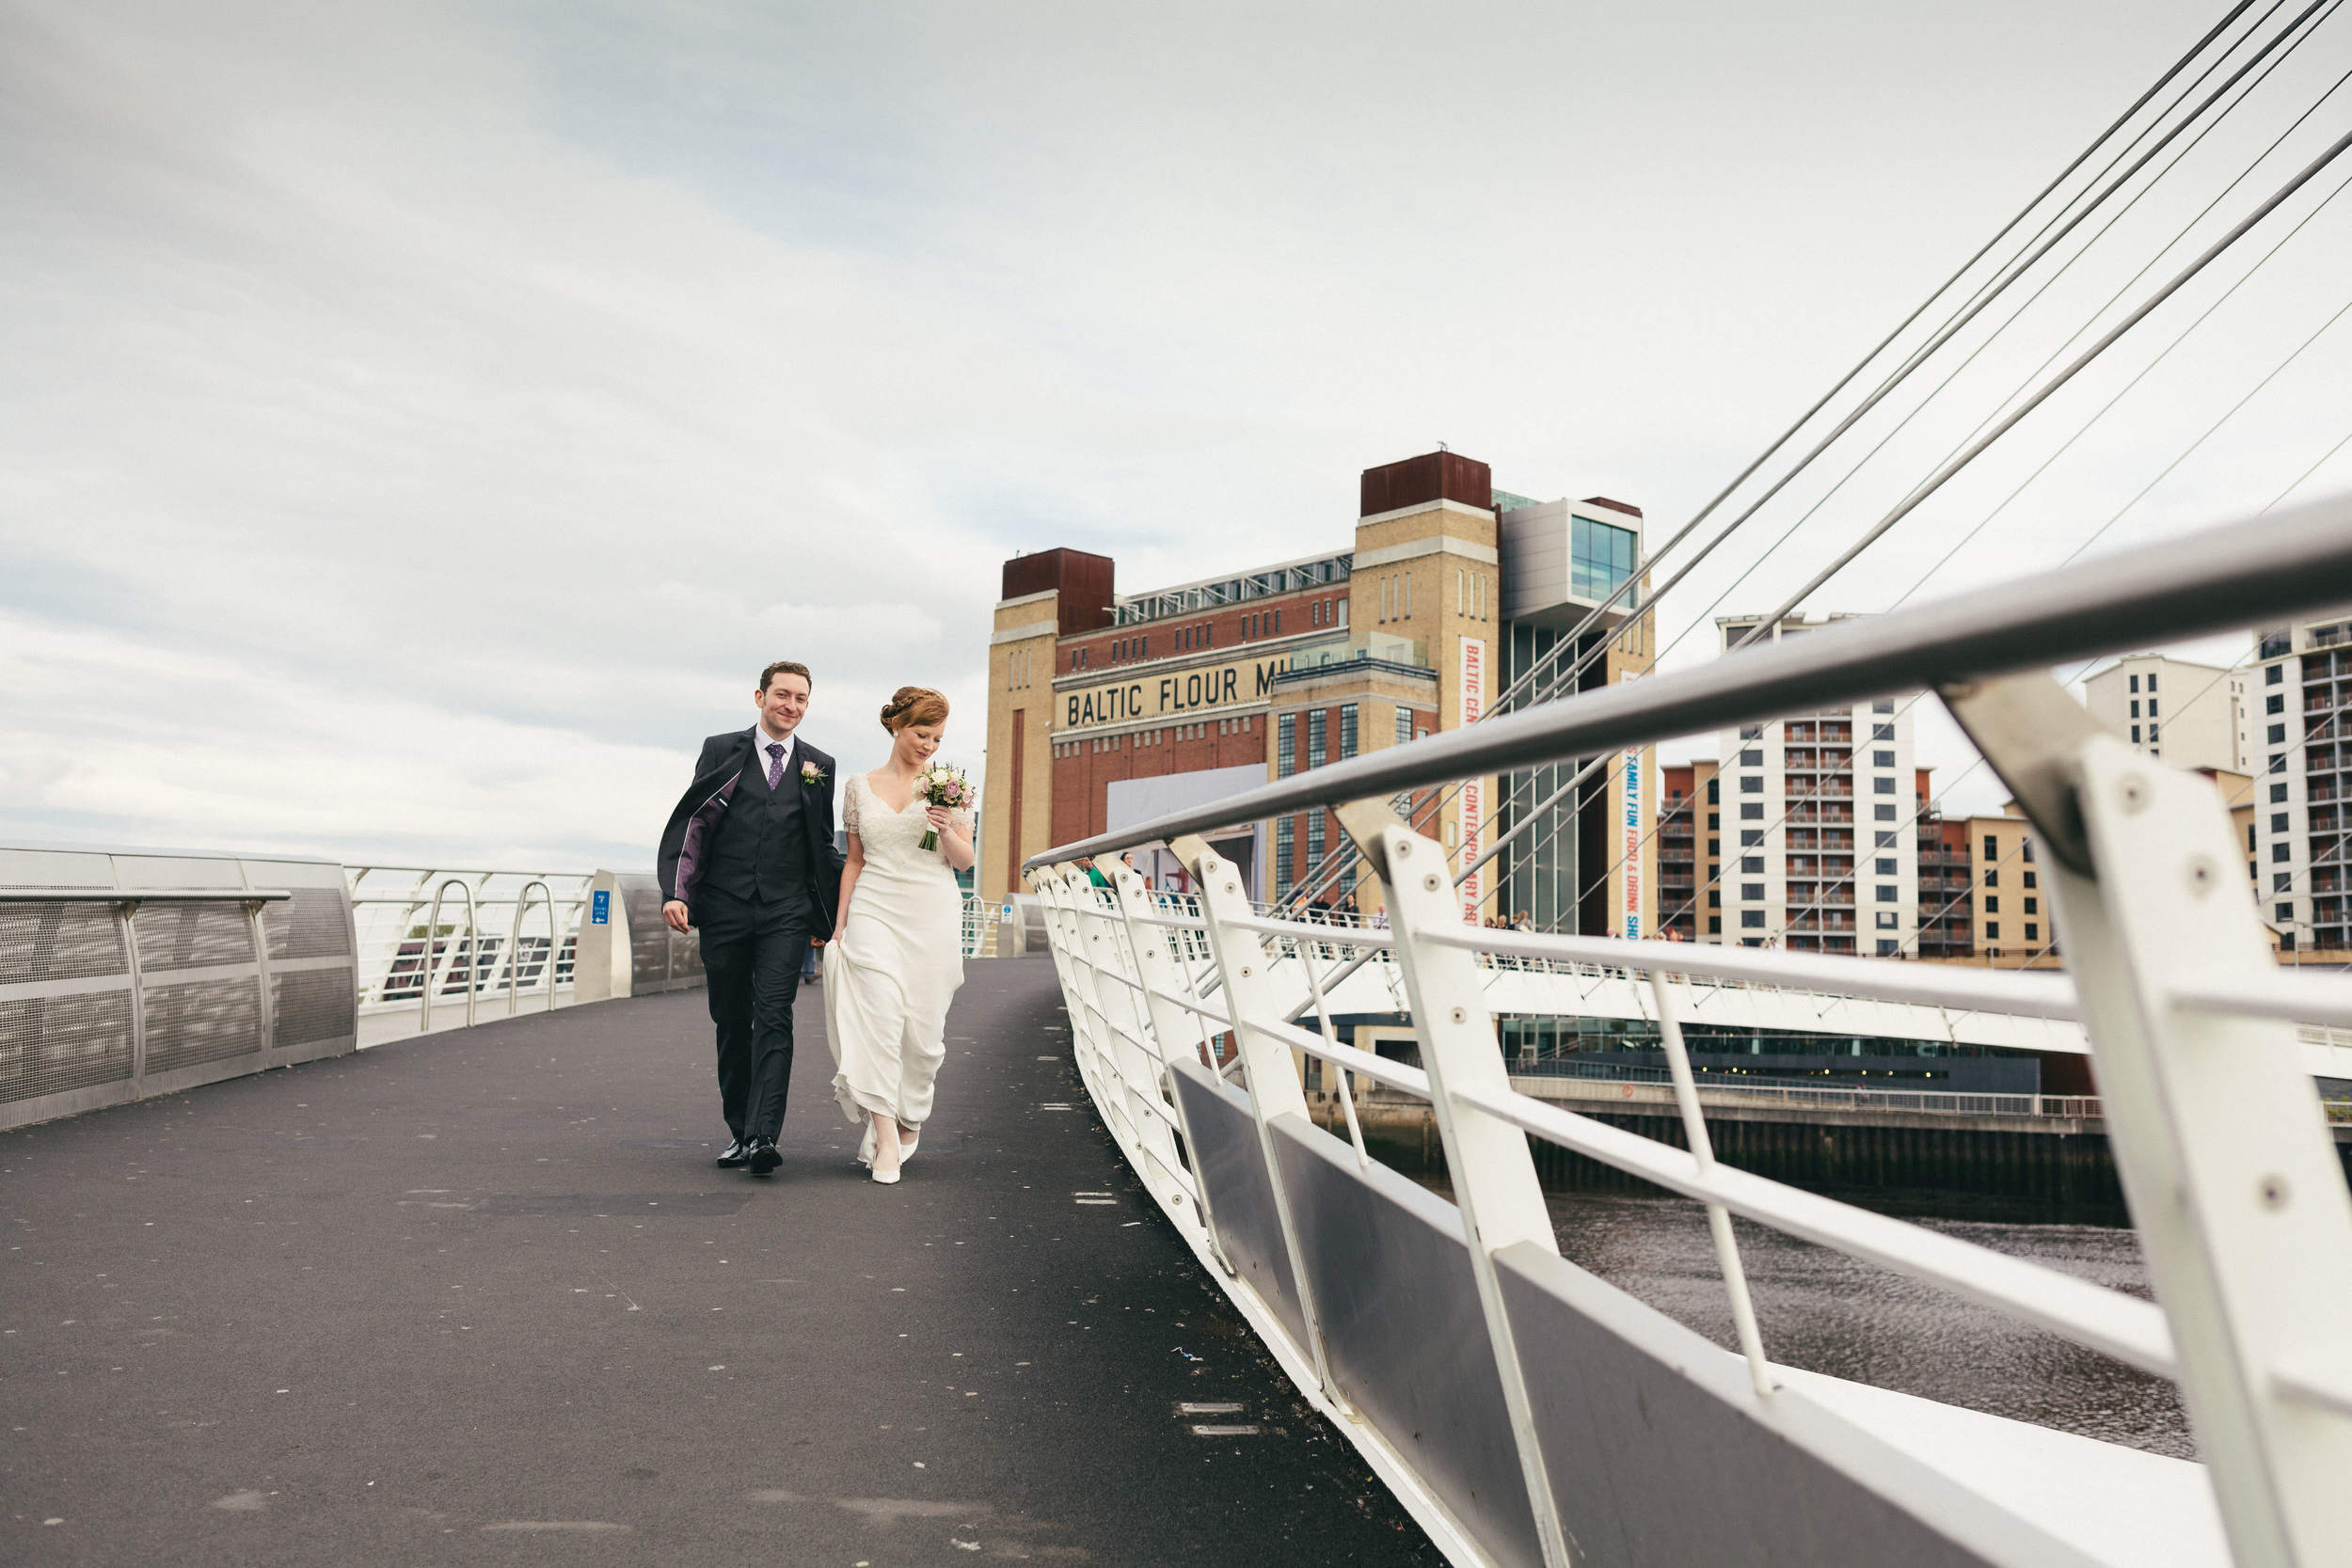 Malmaison Newcastle is in a great location for wedding photography